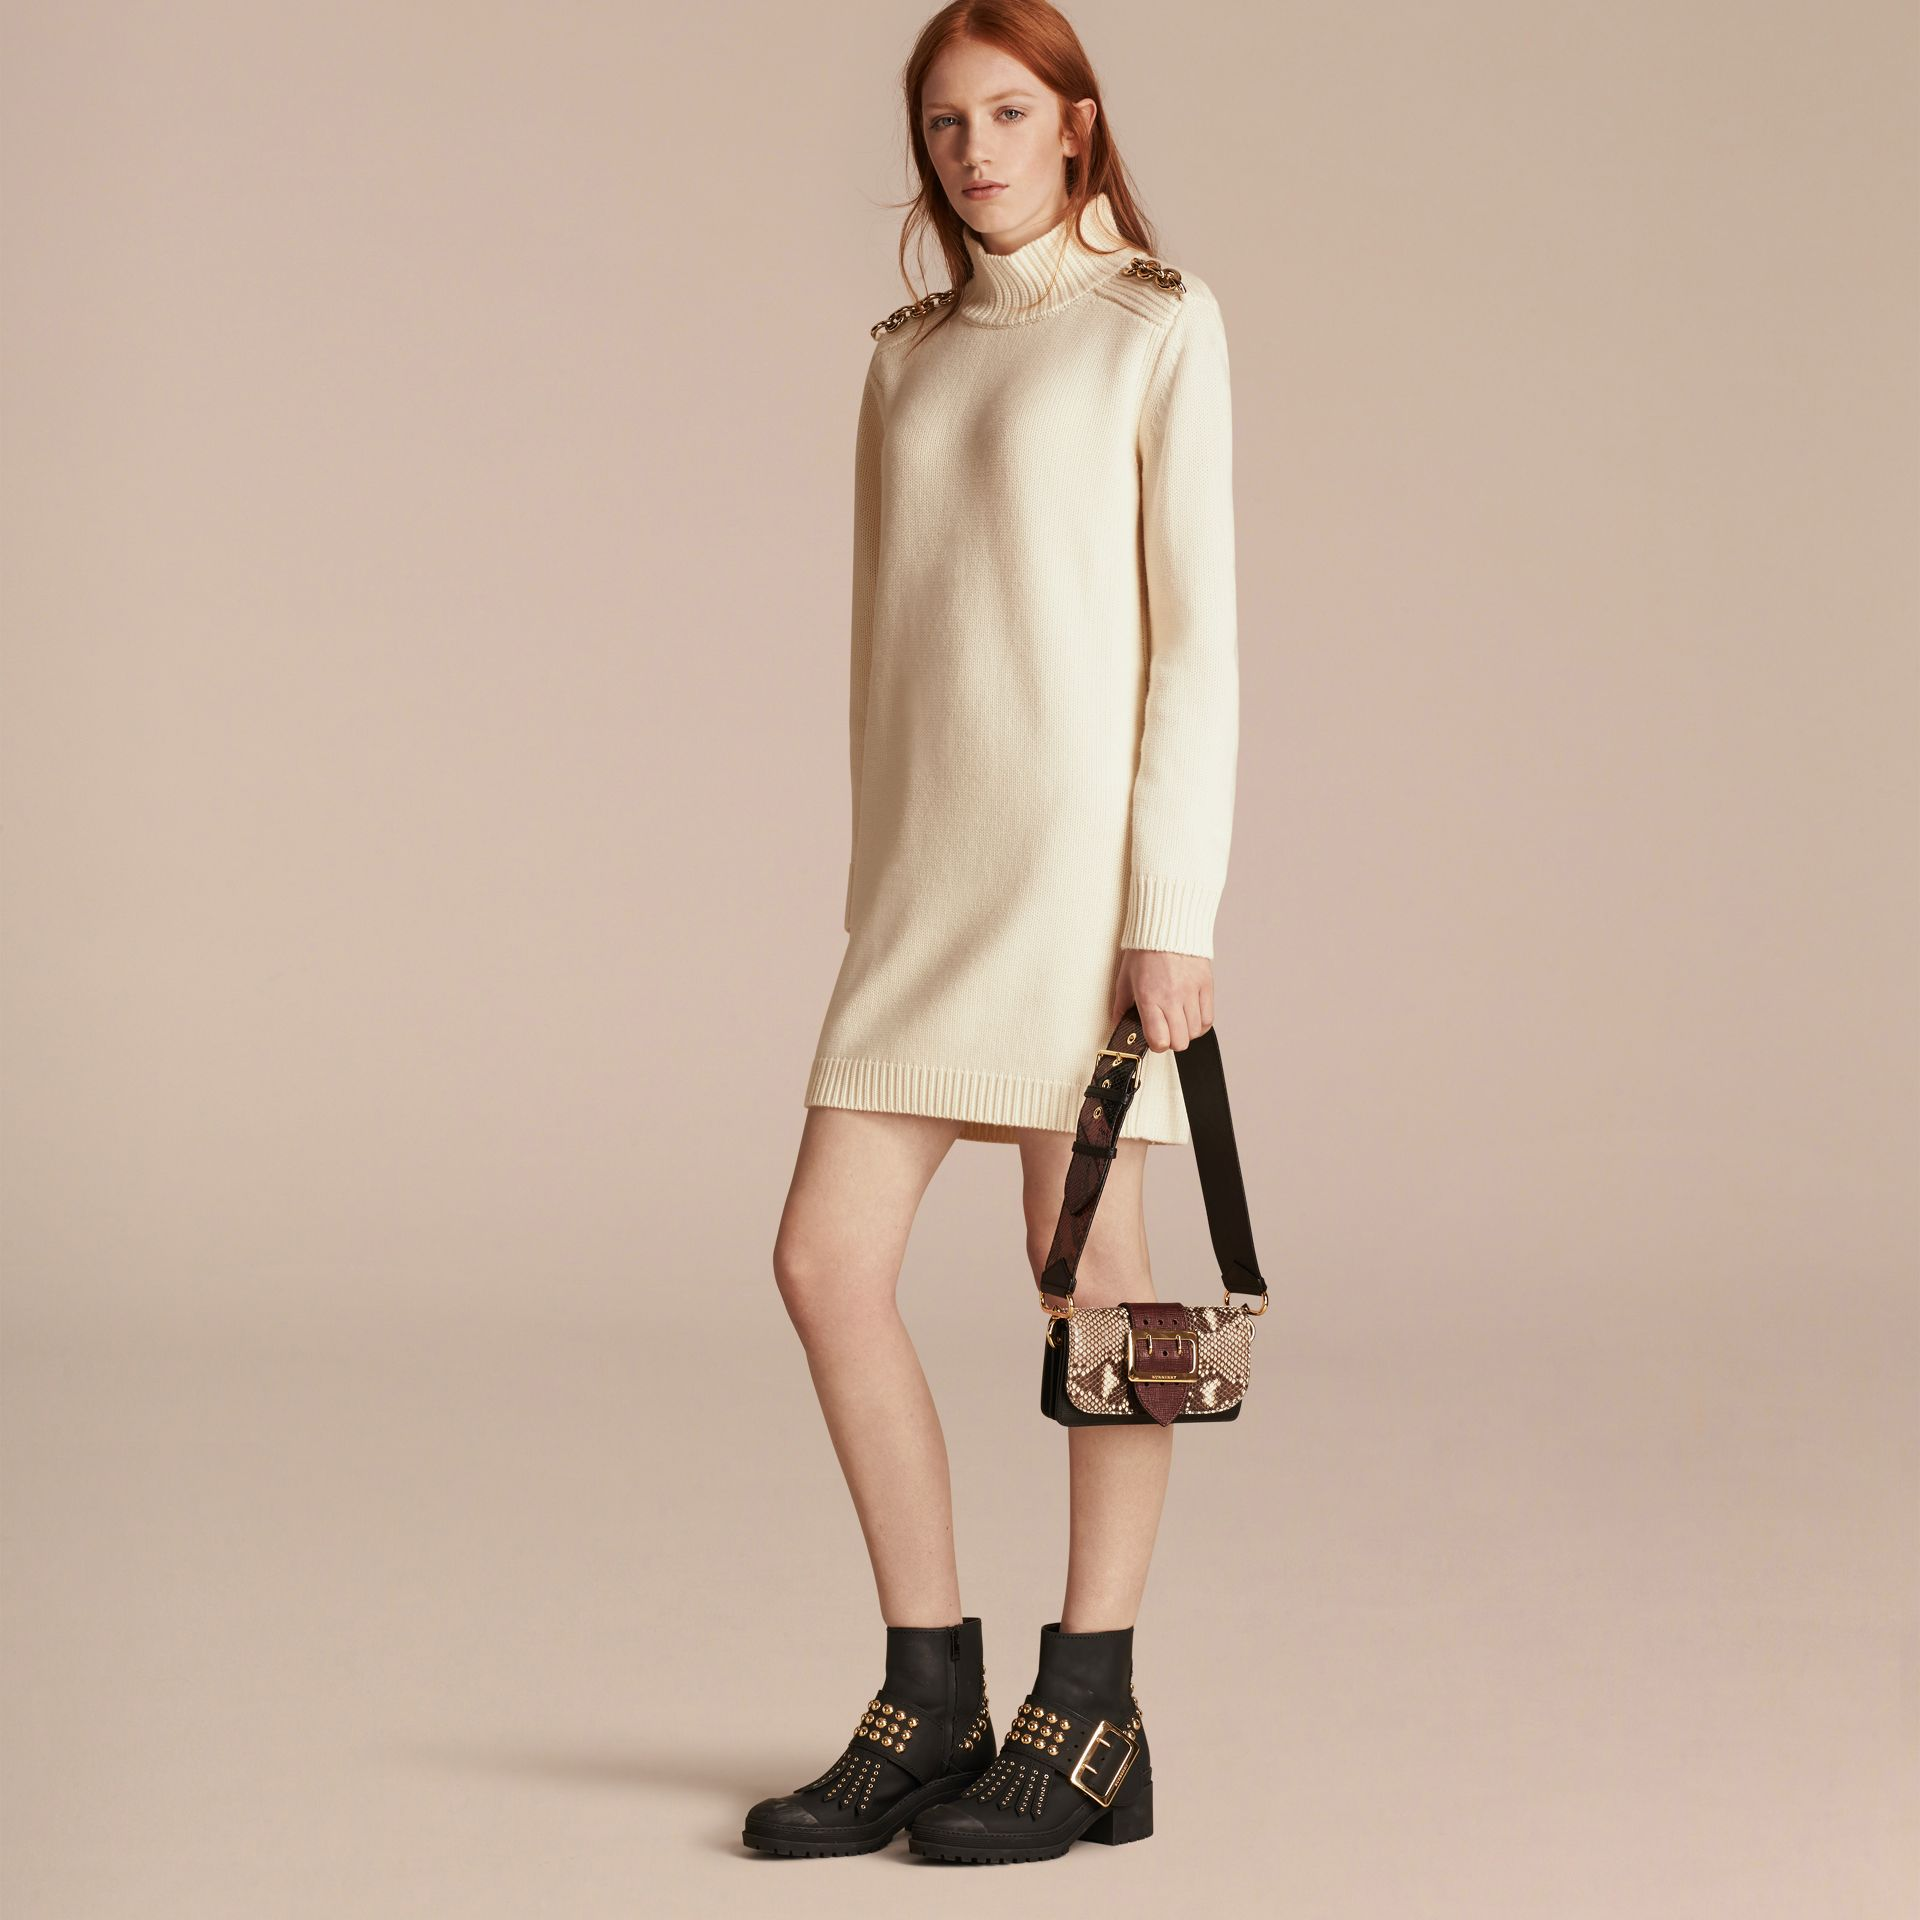 Natural white Chain Detail Wool Cashmere High-neck Dress Natural White - gallery image 6